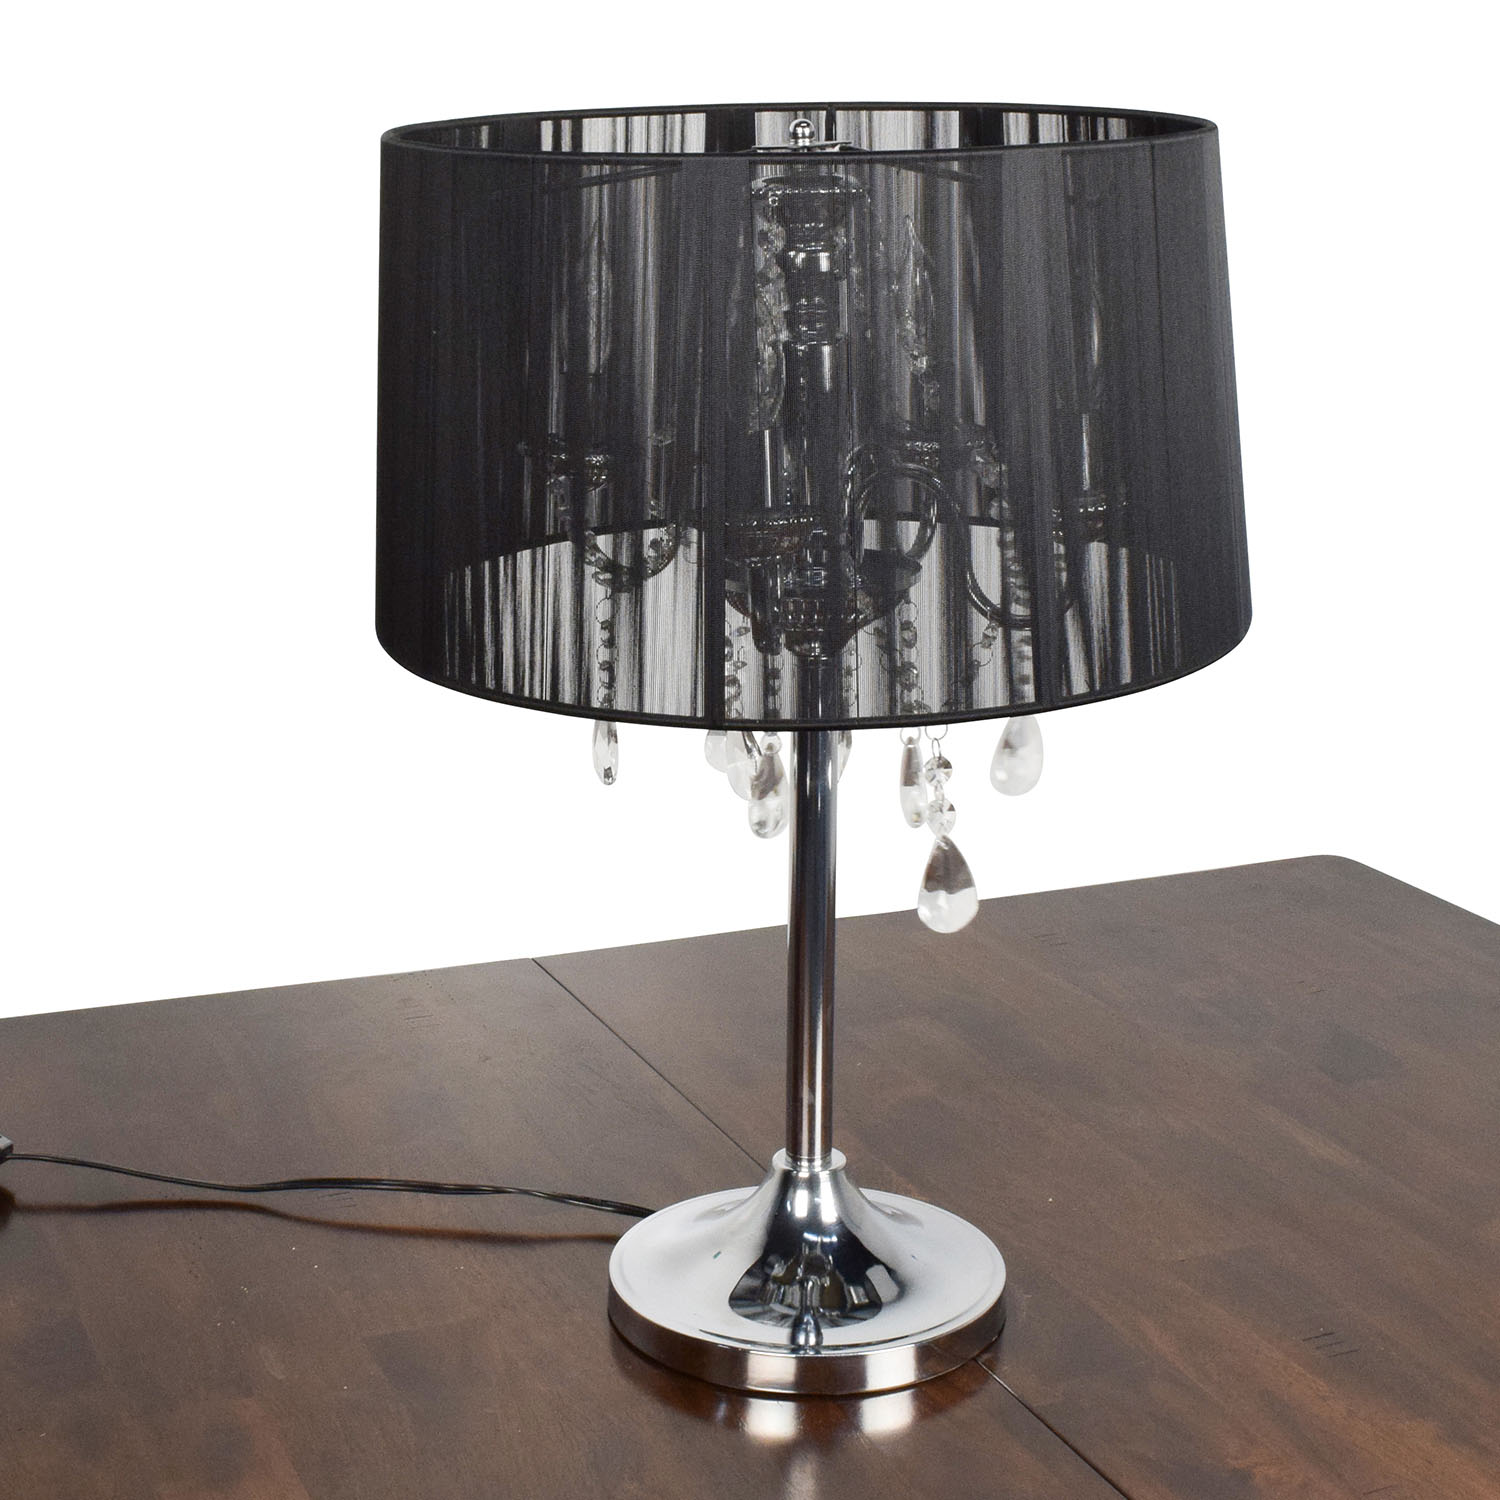 Destination Lighting Destination Lightening Lamps with Crystals and Chrome Base for sale